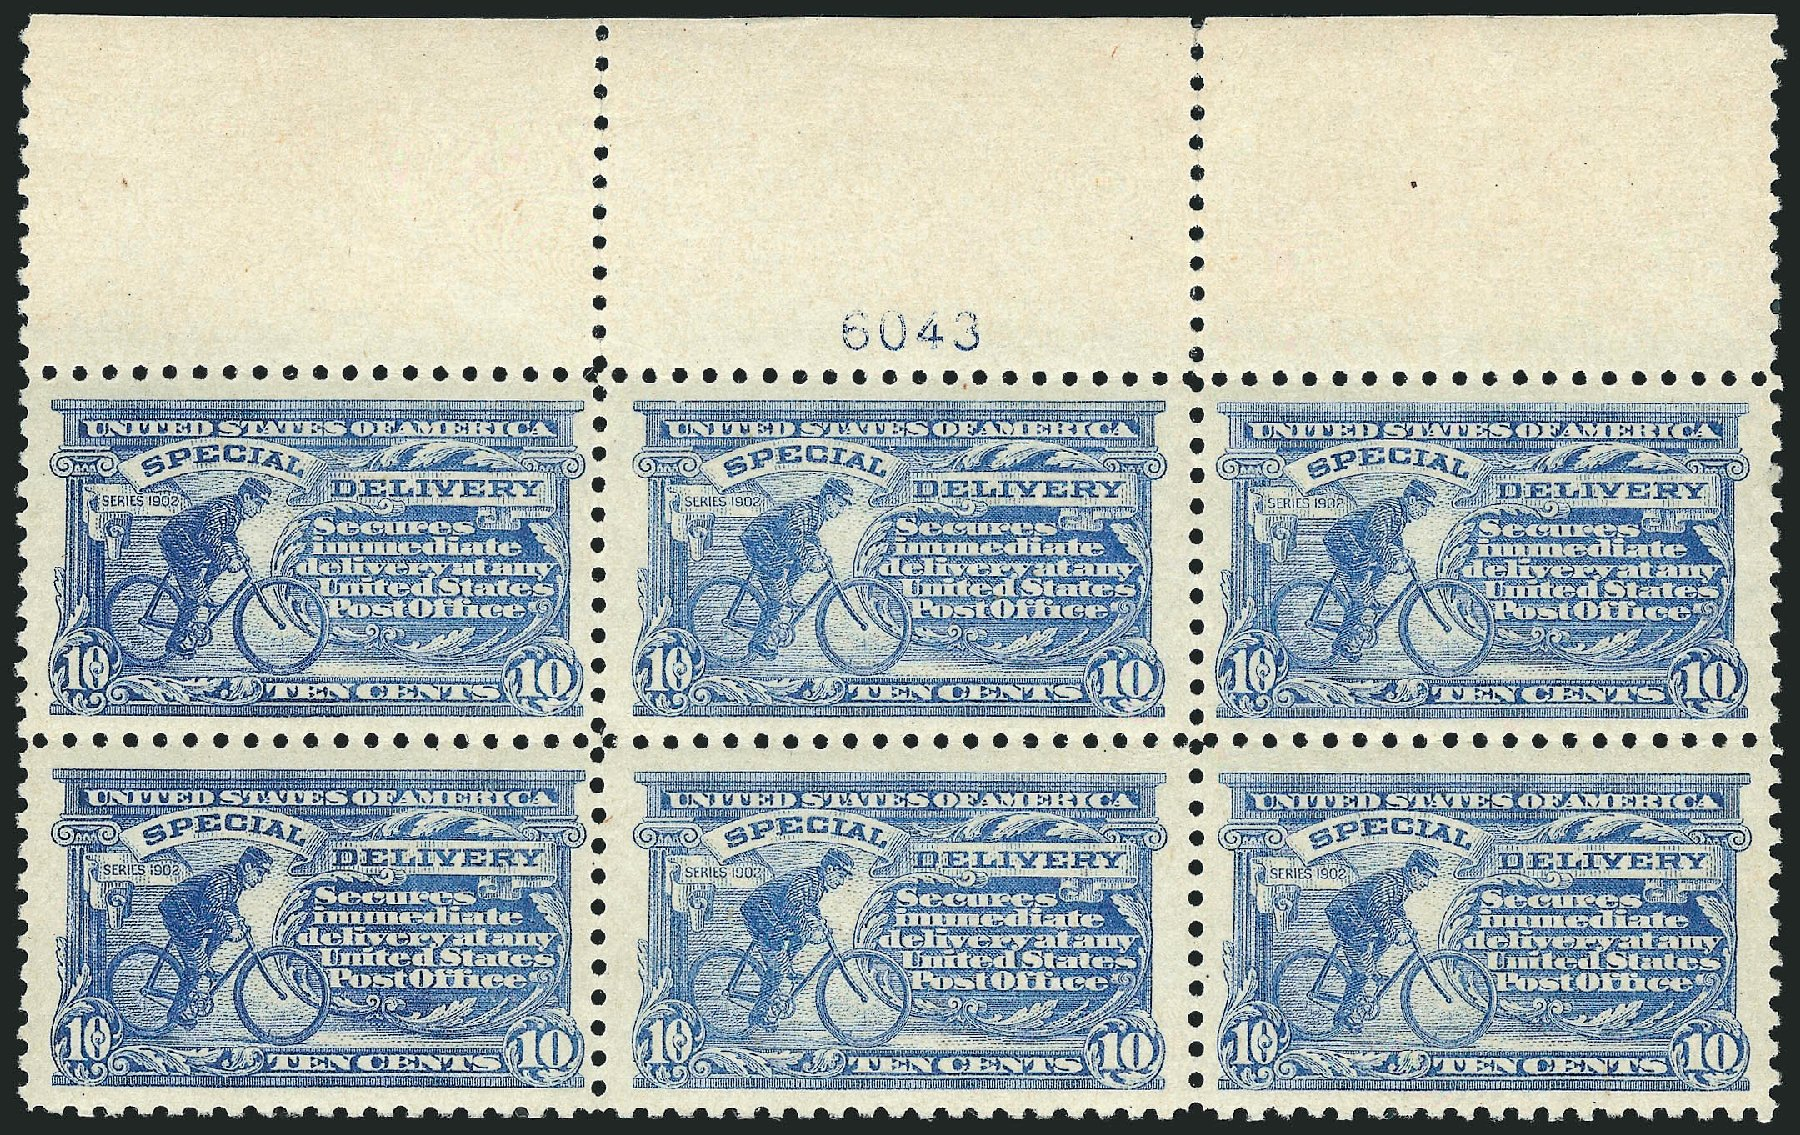 US Stamp Price Scott Cat. # E10 - 1916 10c Special Delivery. Robert Siegel Auction Galleries, Feb 2015, Sale 1092, Lot 1427